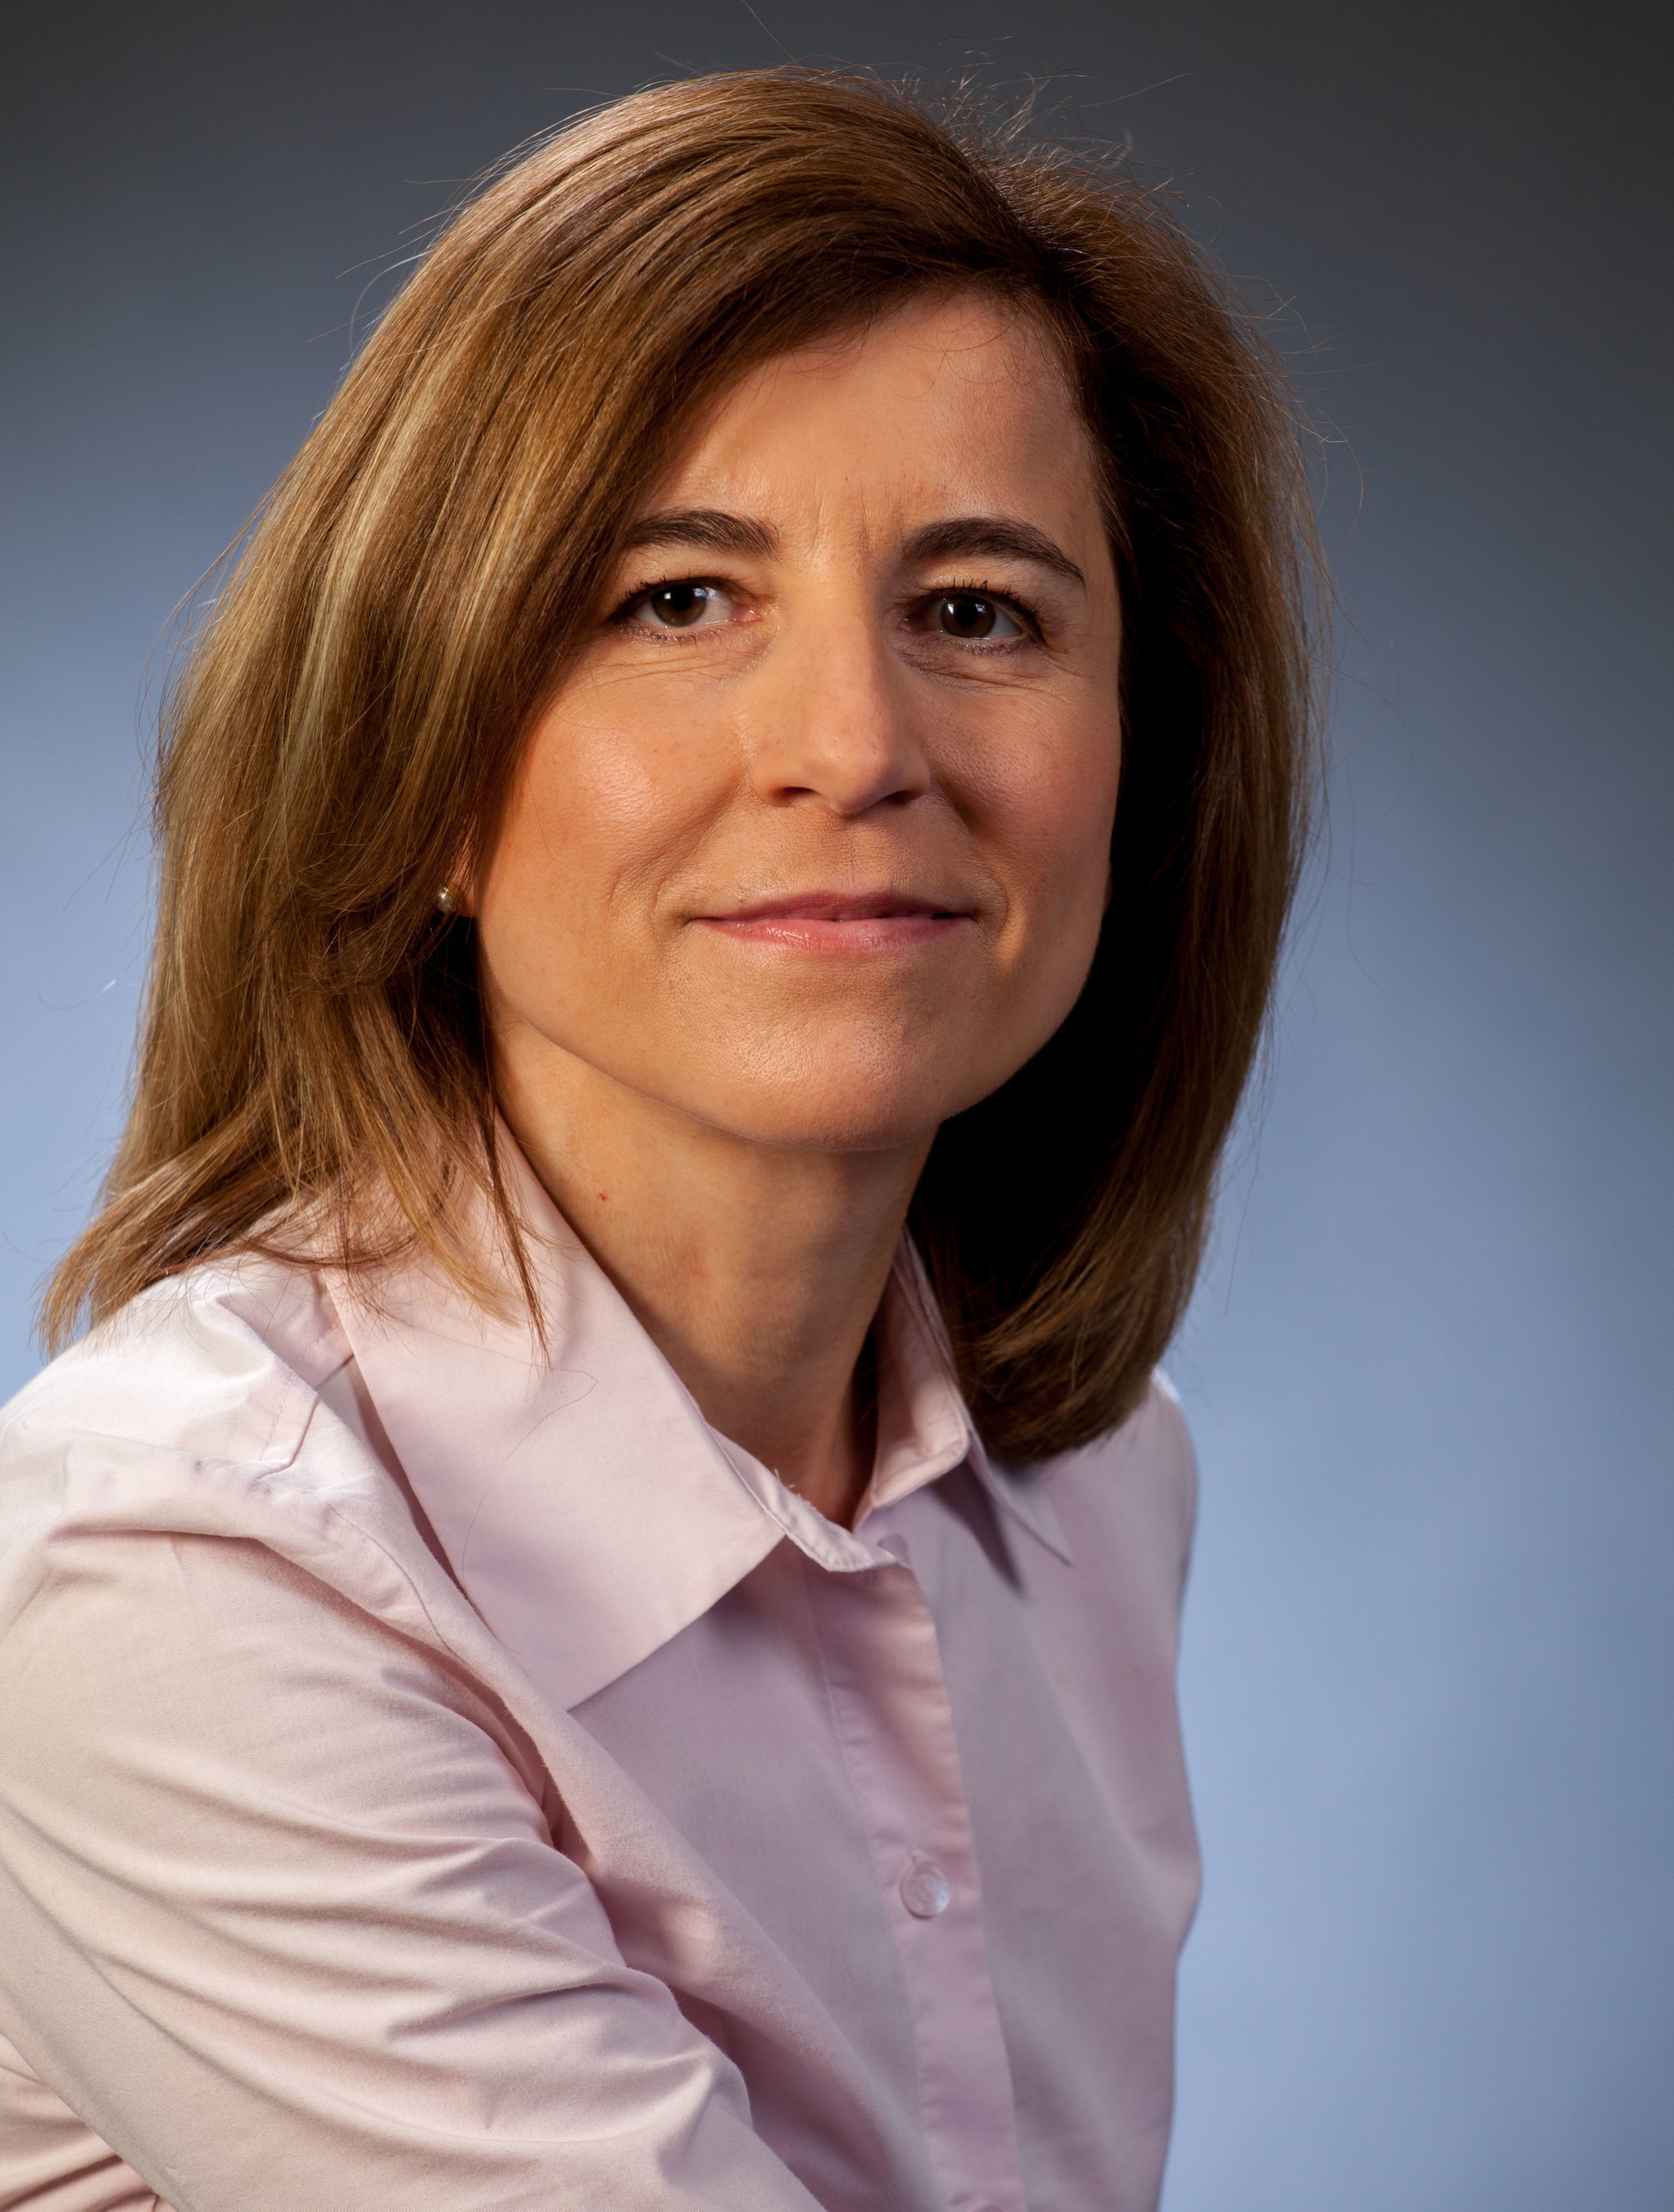 Gritstone Oncology has appointed Karin Jooss, Ph.D., as the company's chief scientific officer